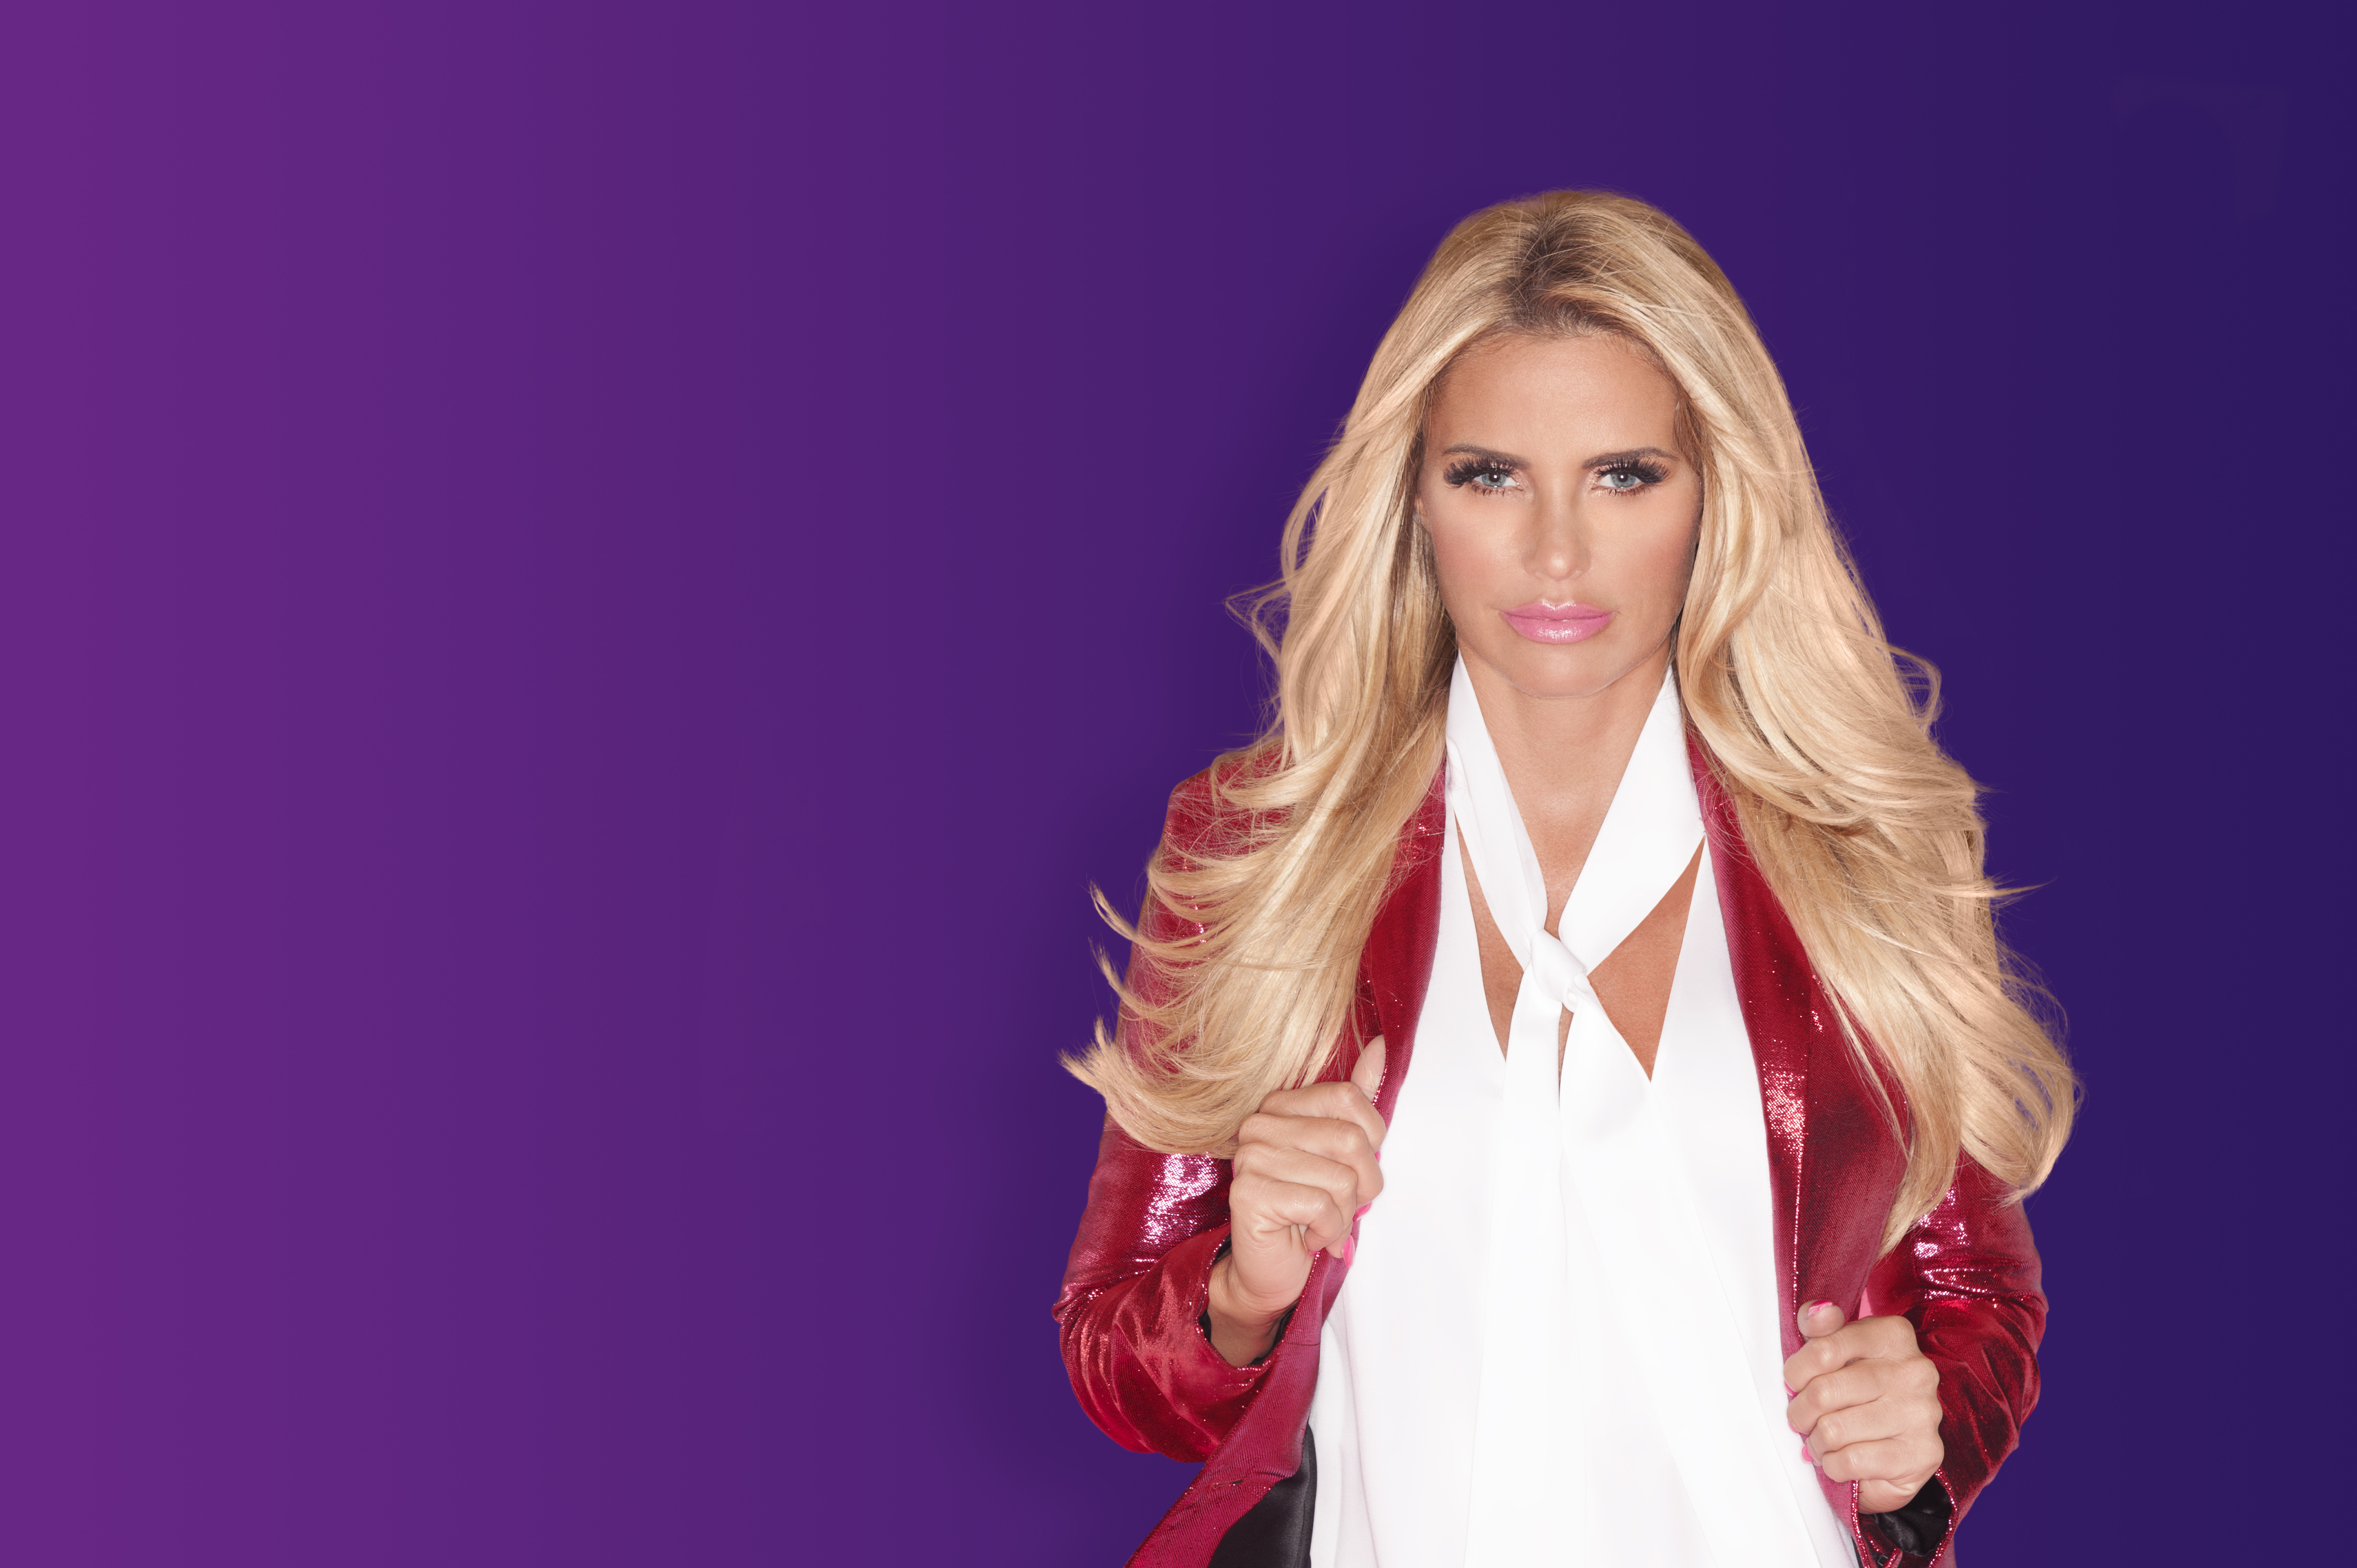 When is Katie Price: My Crazy Life on TV and what is her new show about?